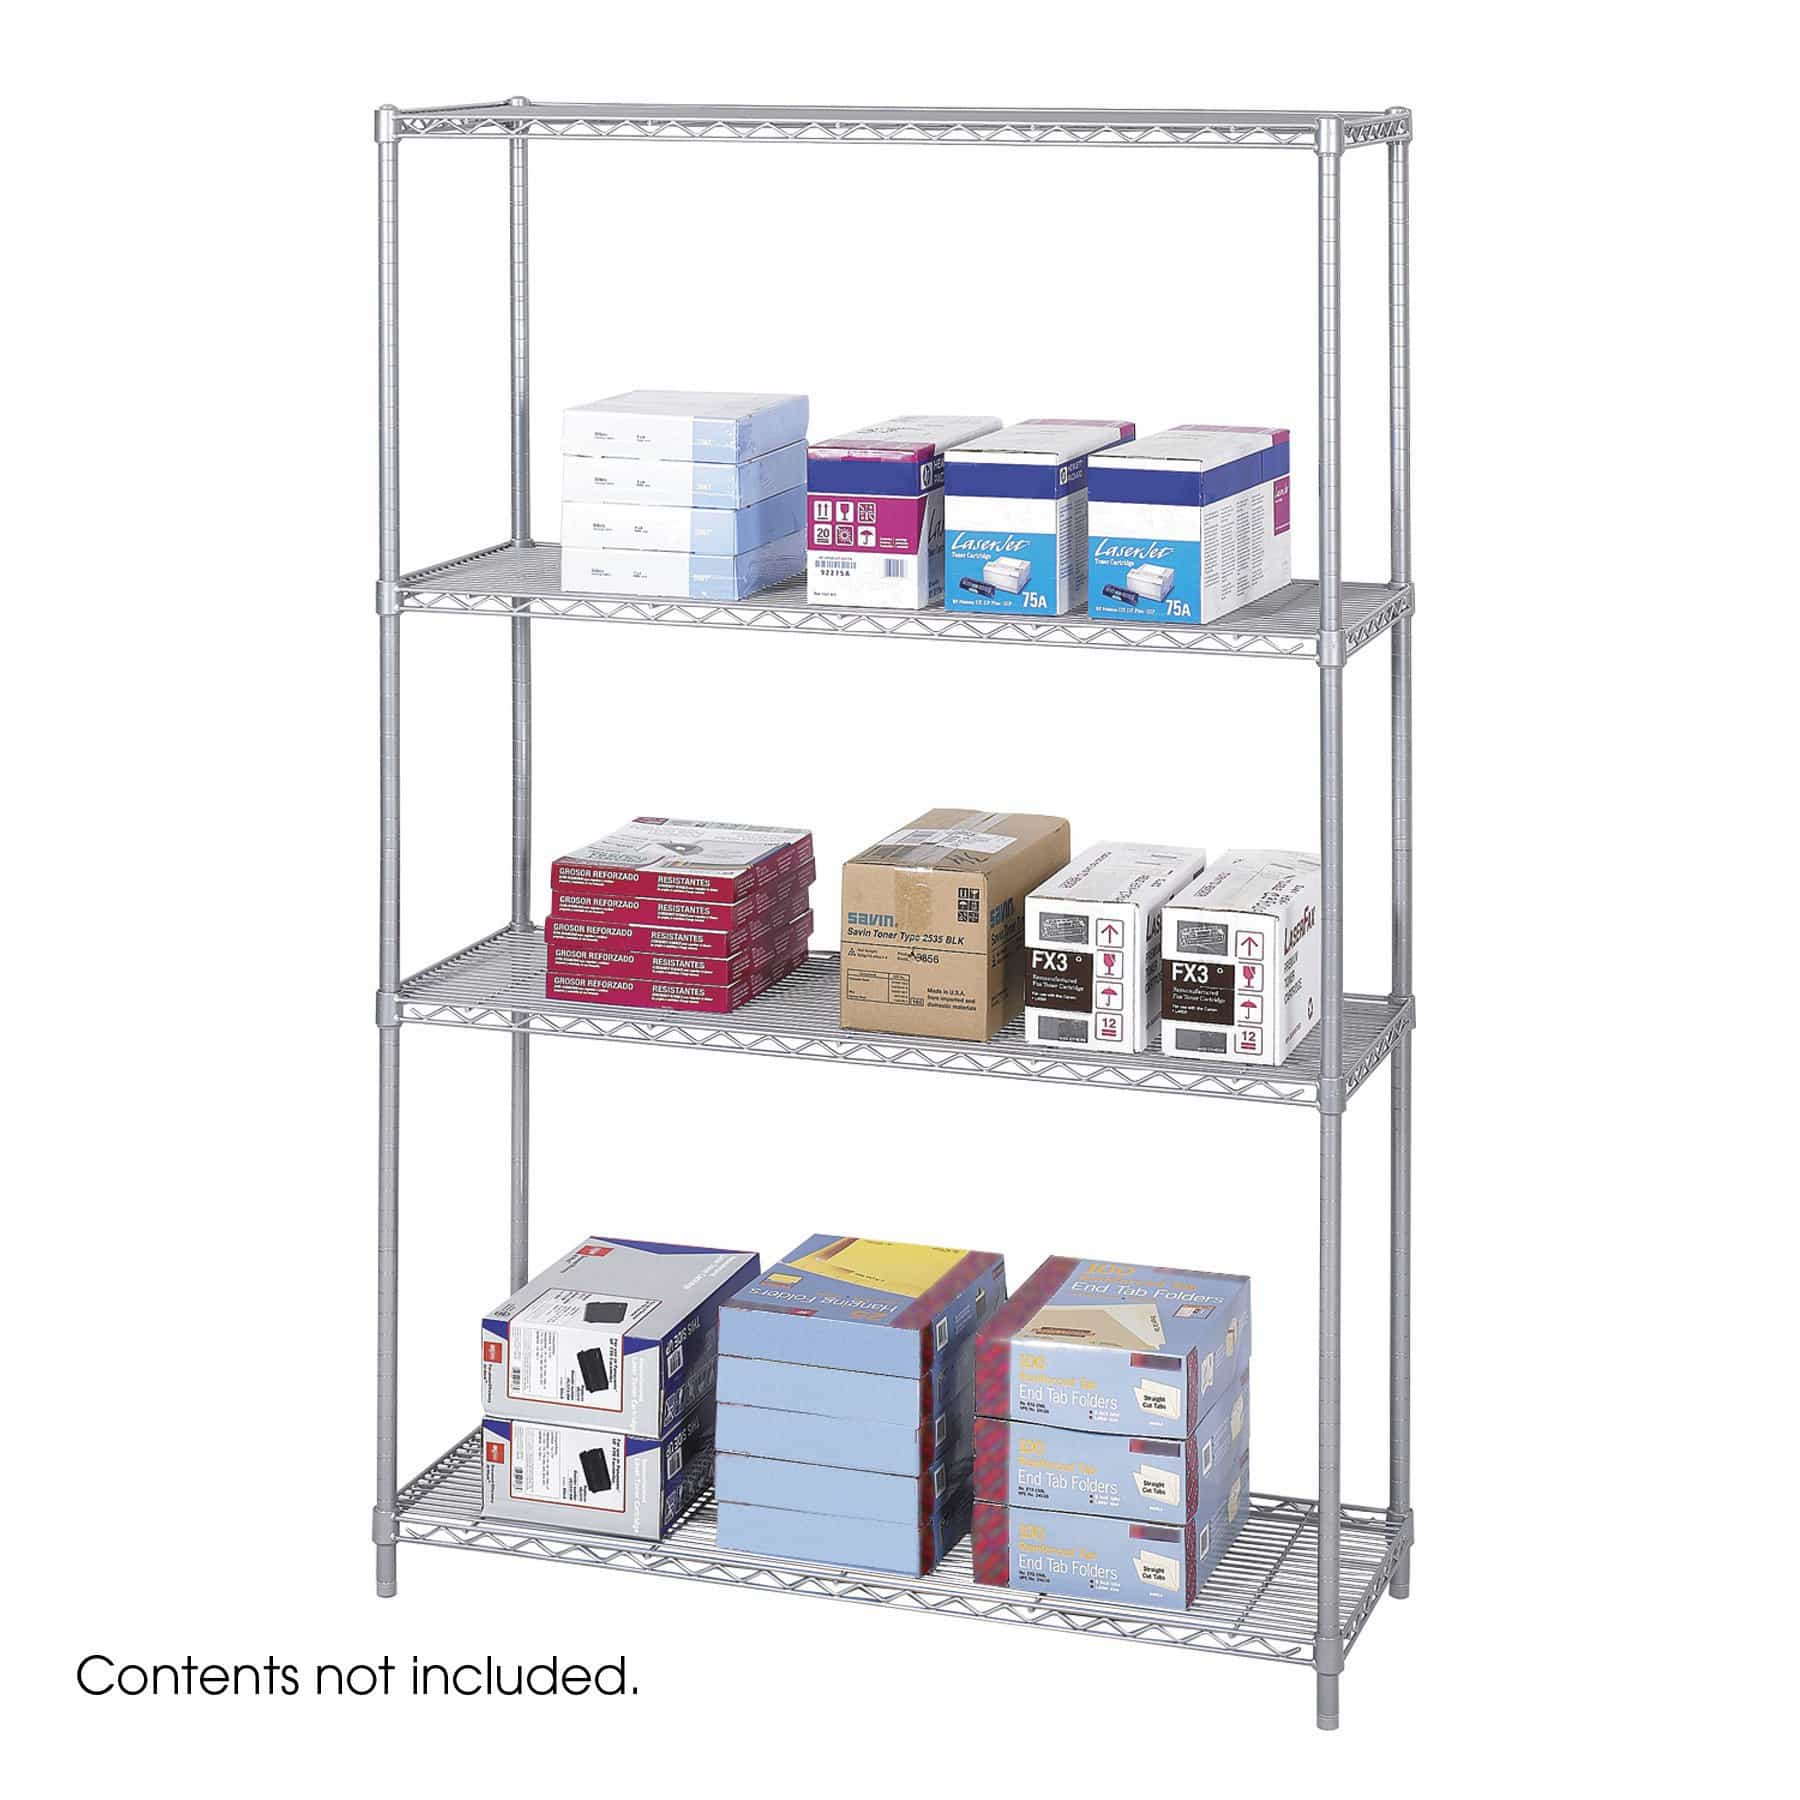 bedinhome - Industrial 48 In x 18 In powder coat finish welded wire Shelving storage shelf - Safco - Wire Shelving